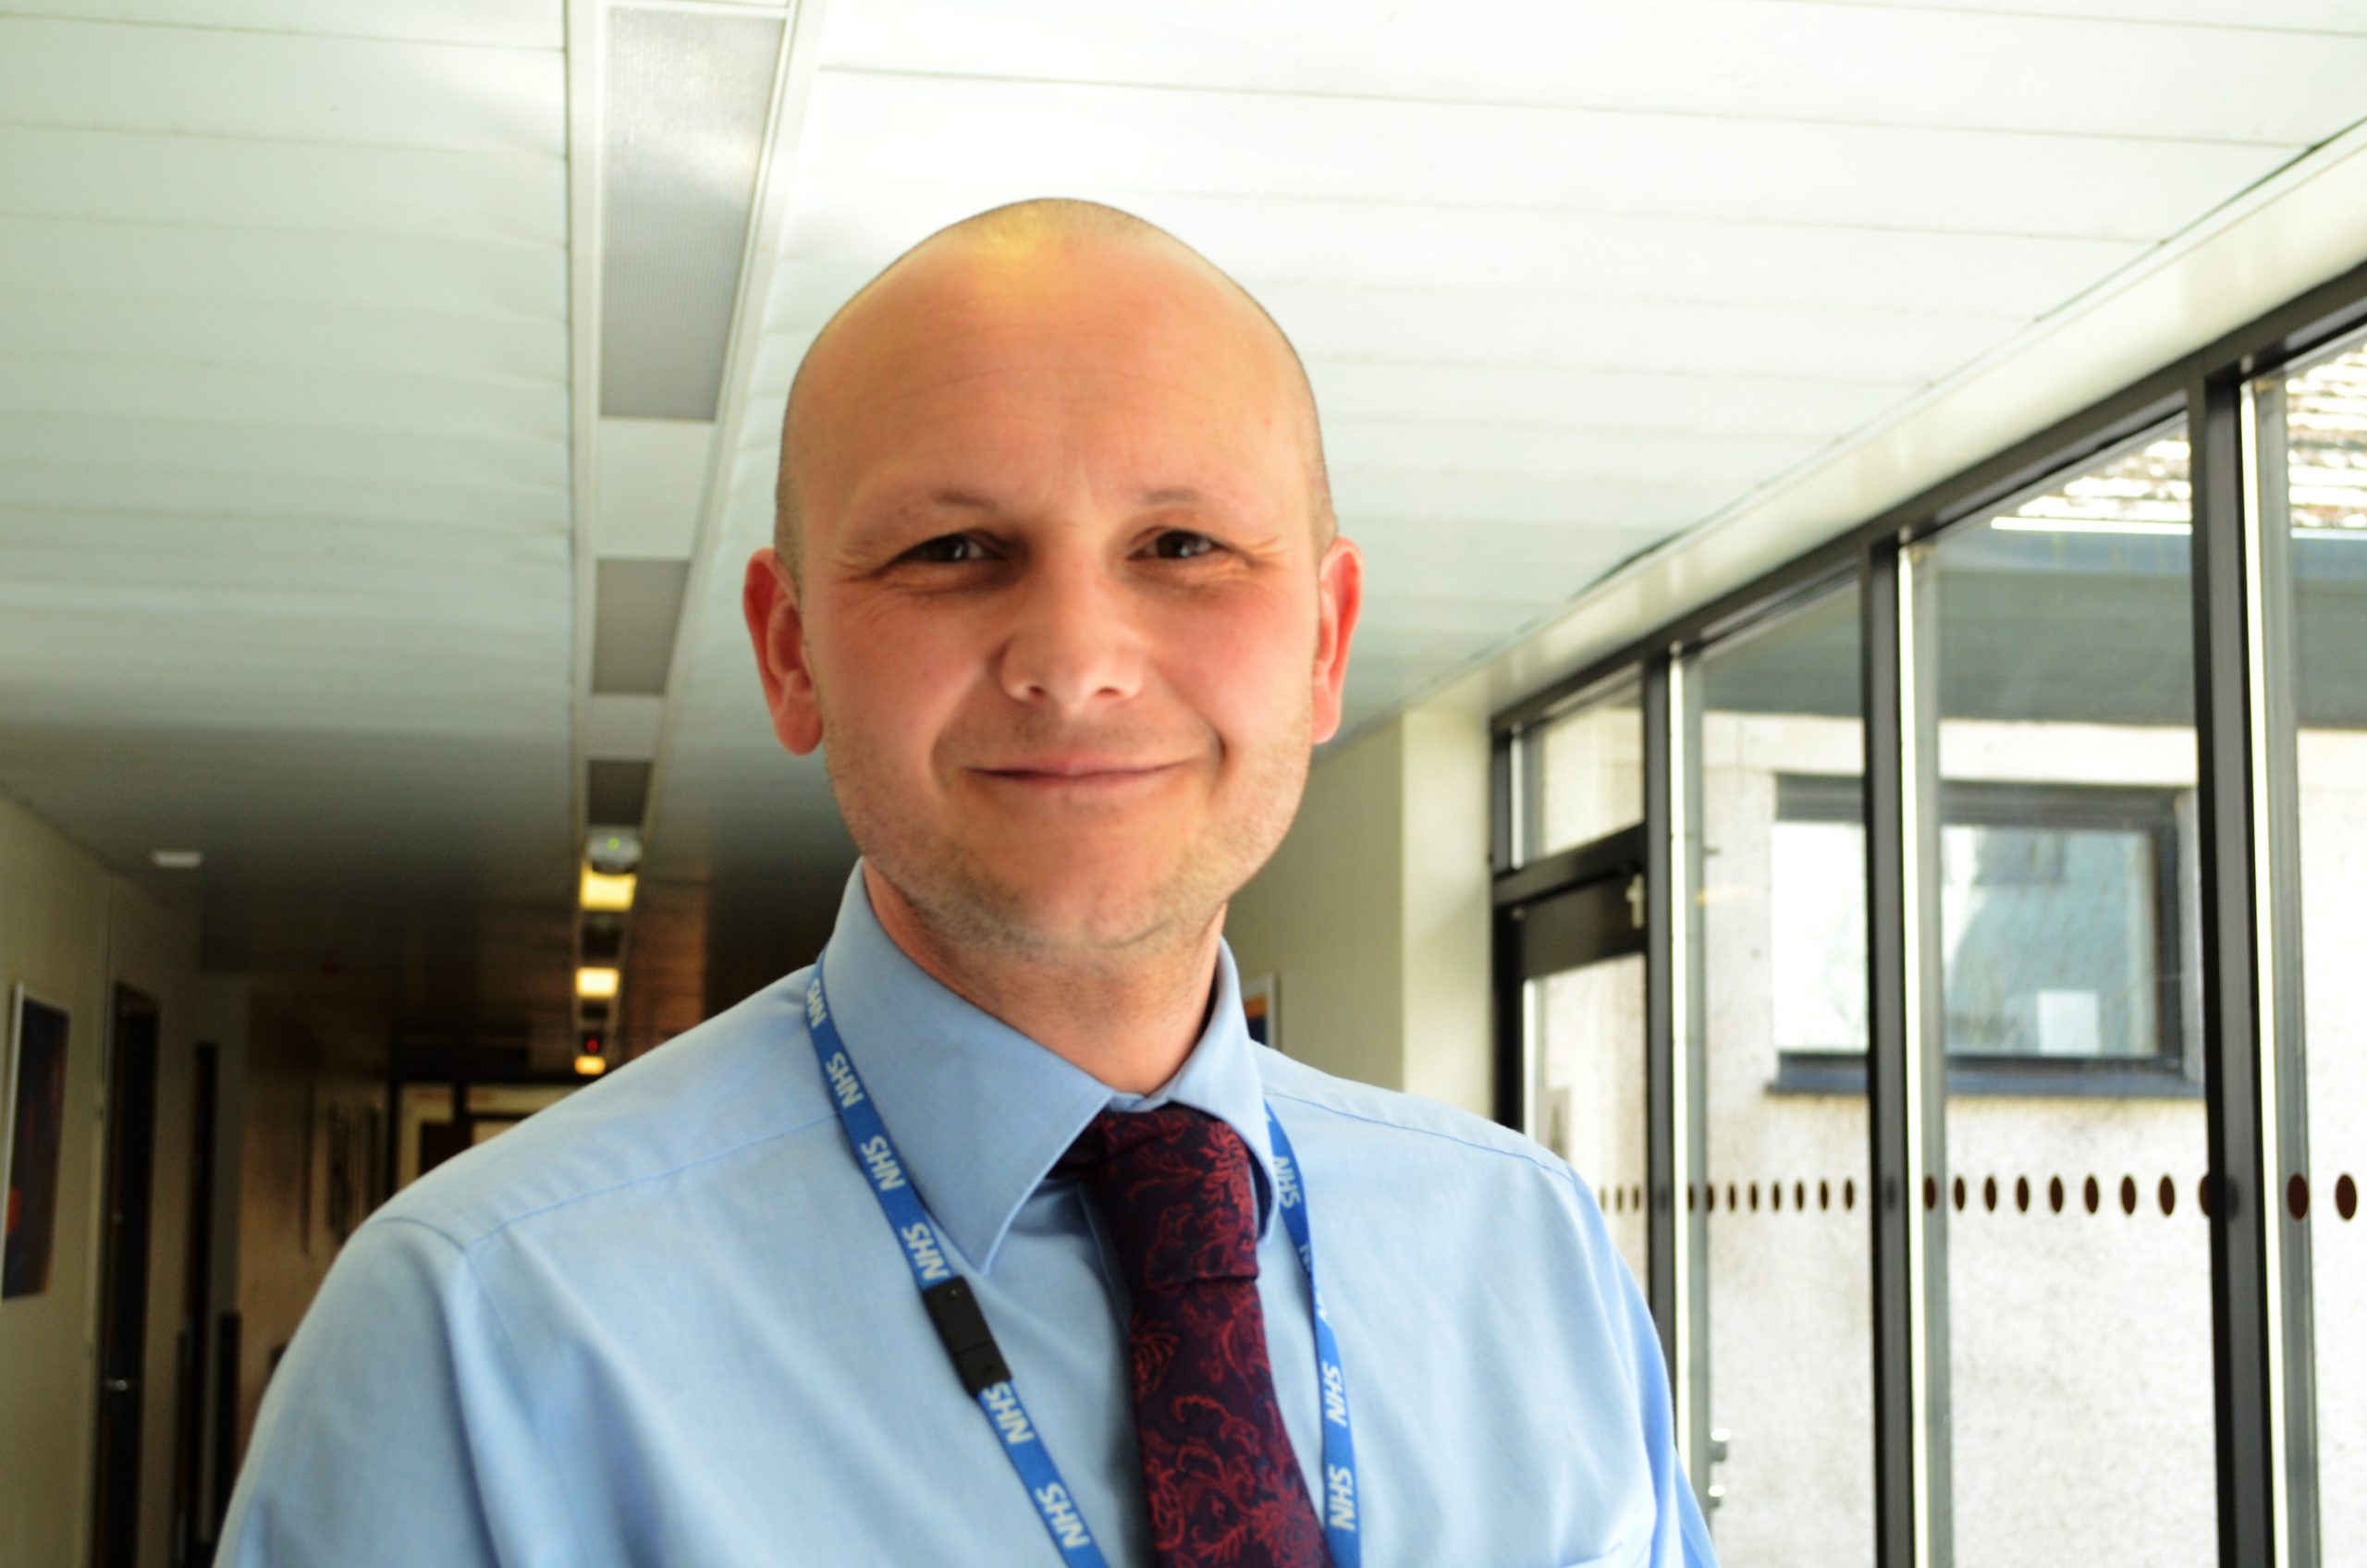 Headshot of Phil Woodford, Director of Corporate Affairs at University Hospitals Morecambe Bay NHS Foundation Trust (UHMBT).